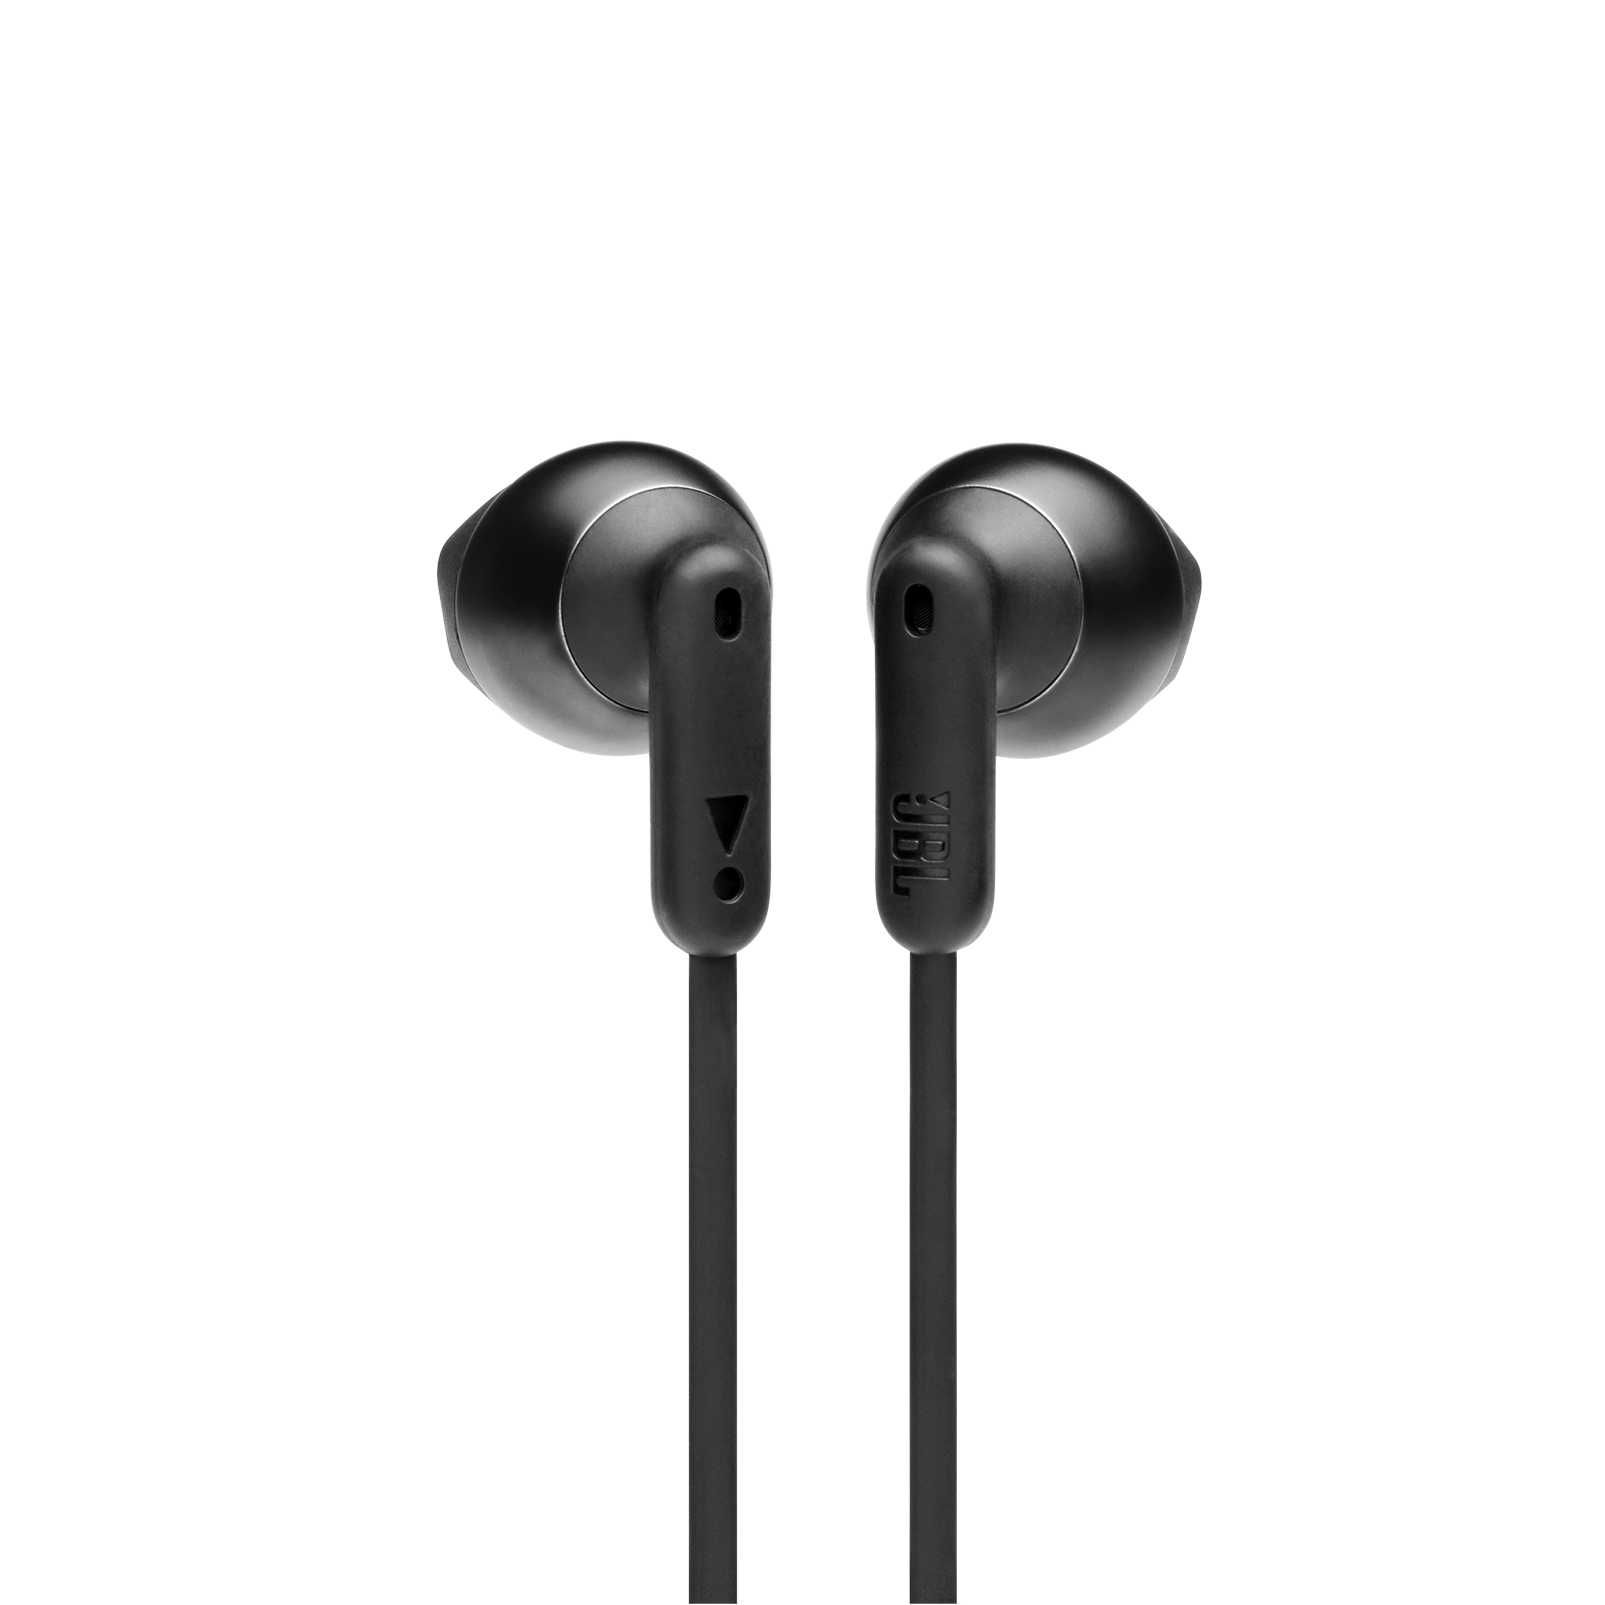 JBL TUNE 215BT - Black - Wireless Earbud headphones - Front